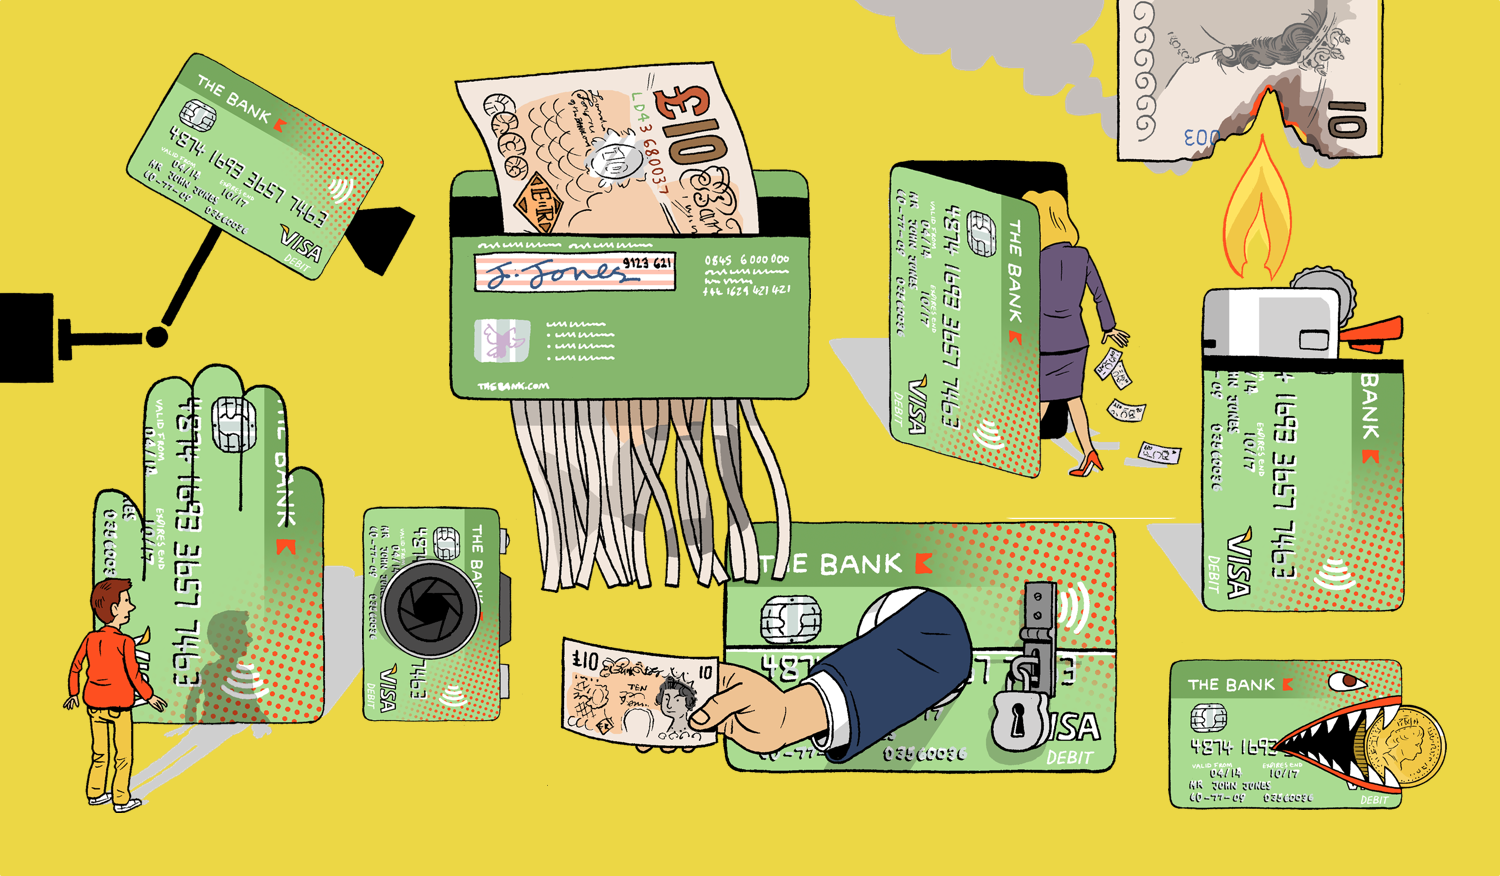 Supermarkets are promoting unscientific anti-cash propaganda. And the banking sector is loving it